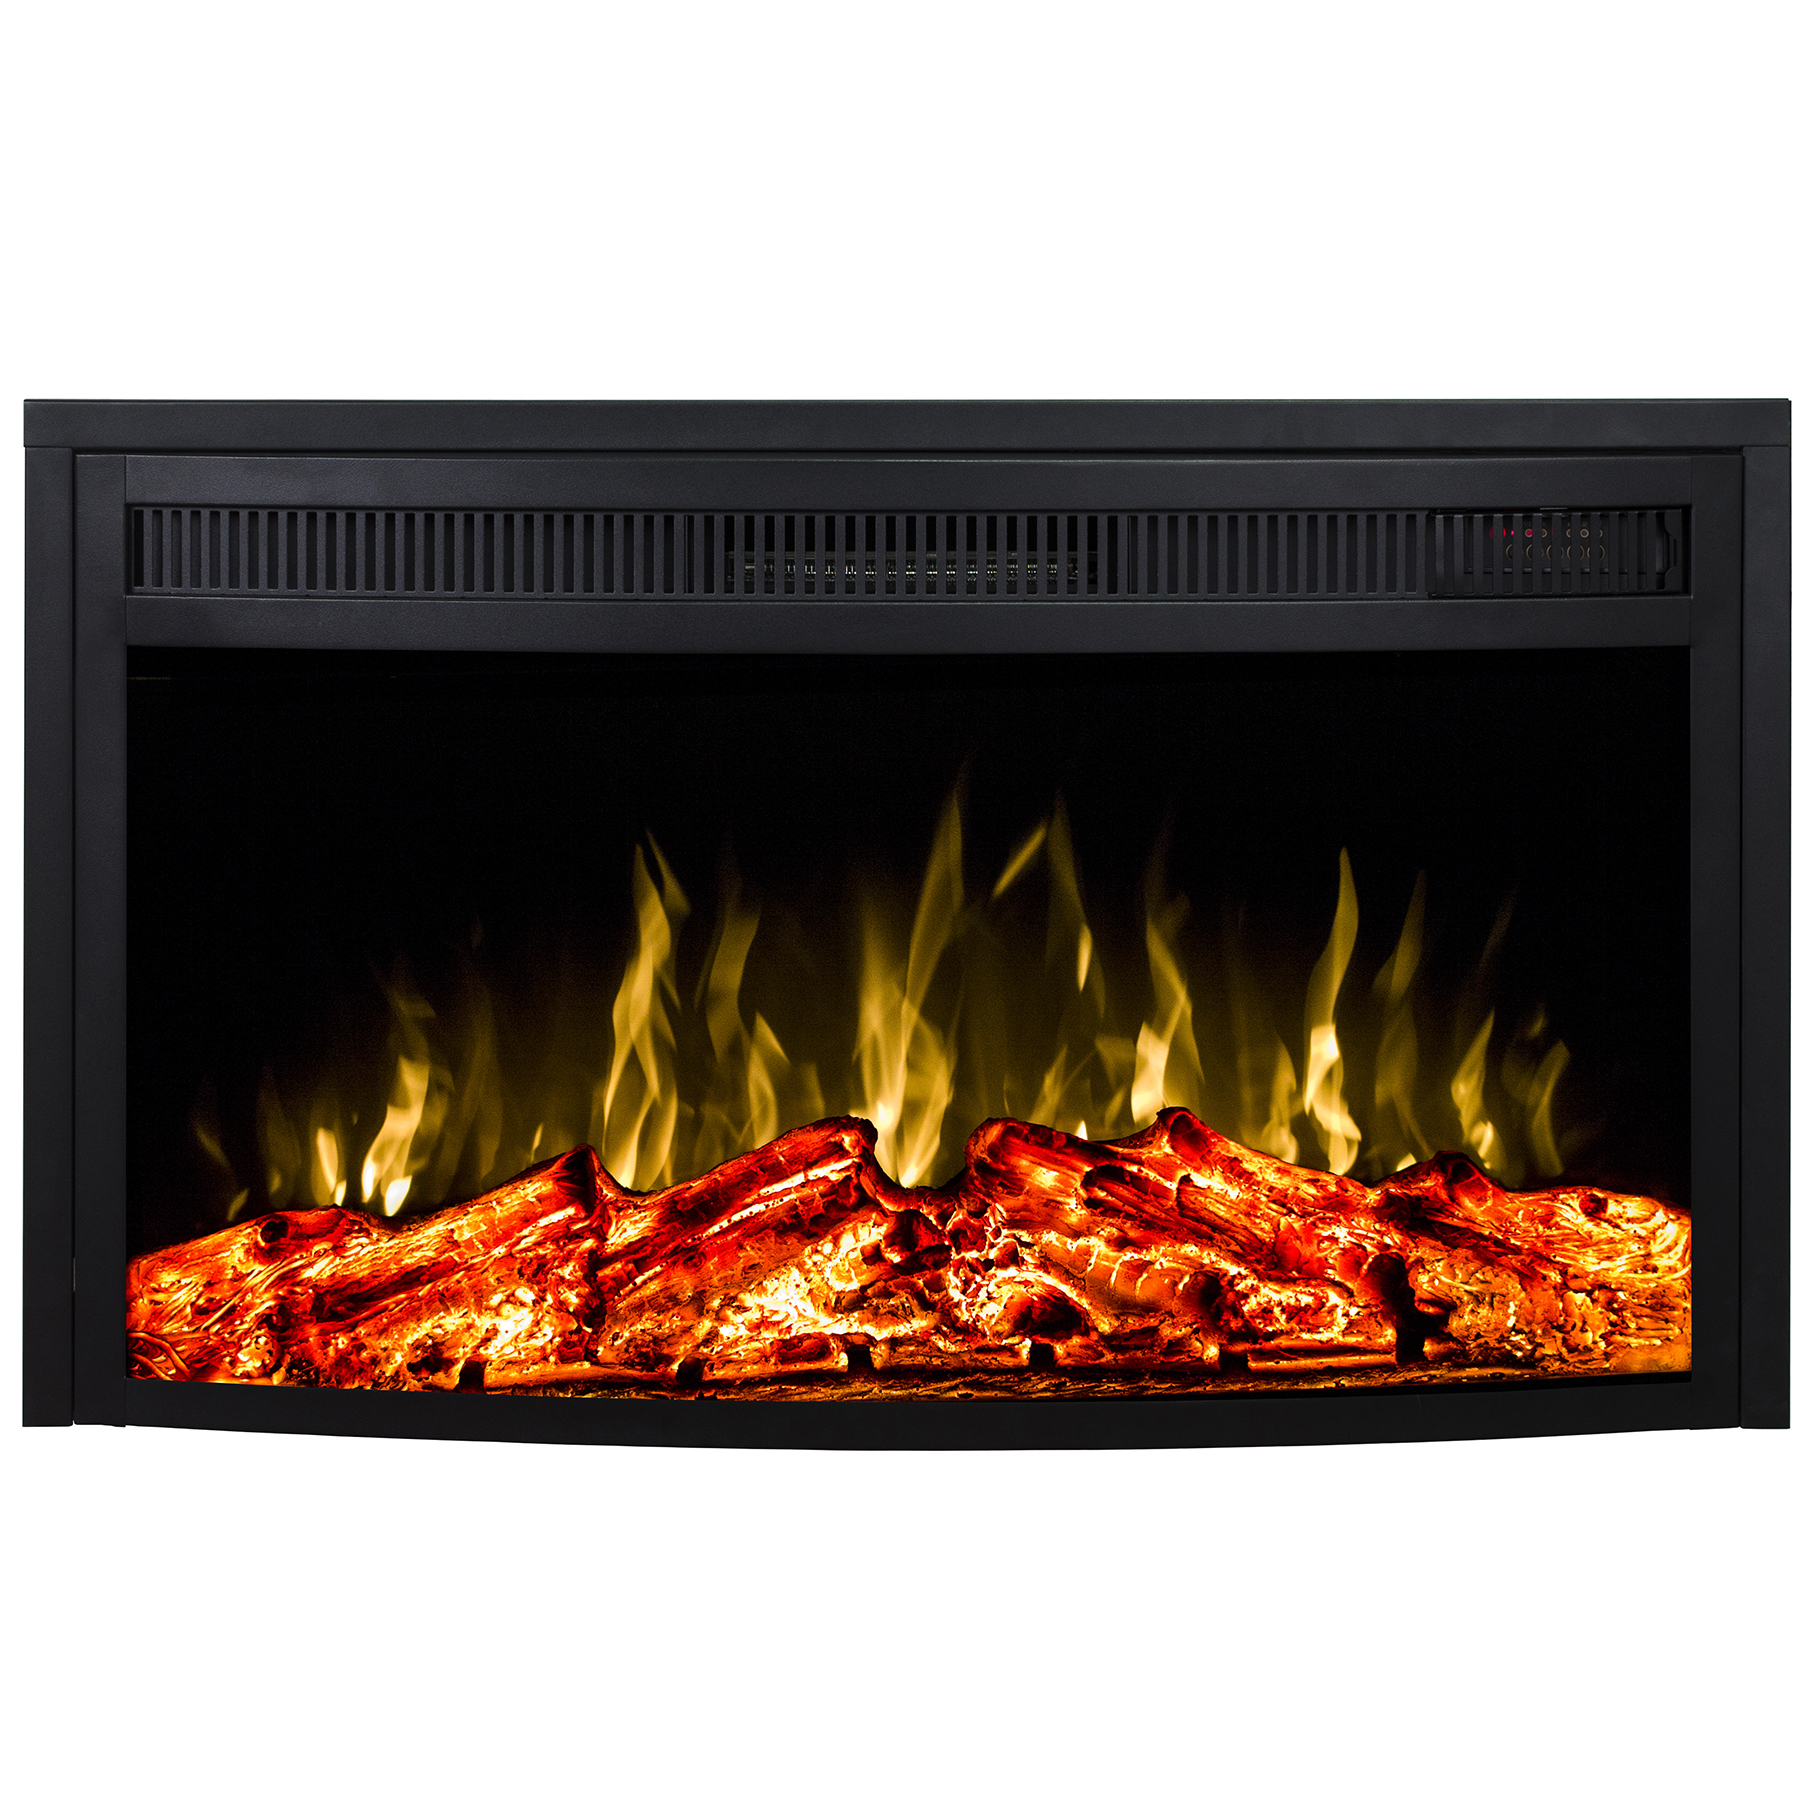 Curved Electric Fireplace 23 Inch Curved Ventless Heater Electric Fireplace Insert